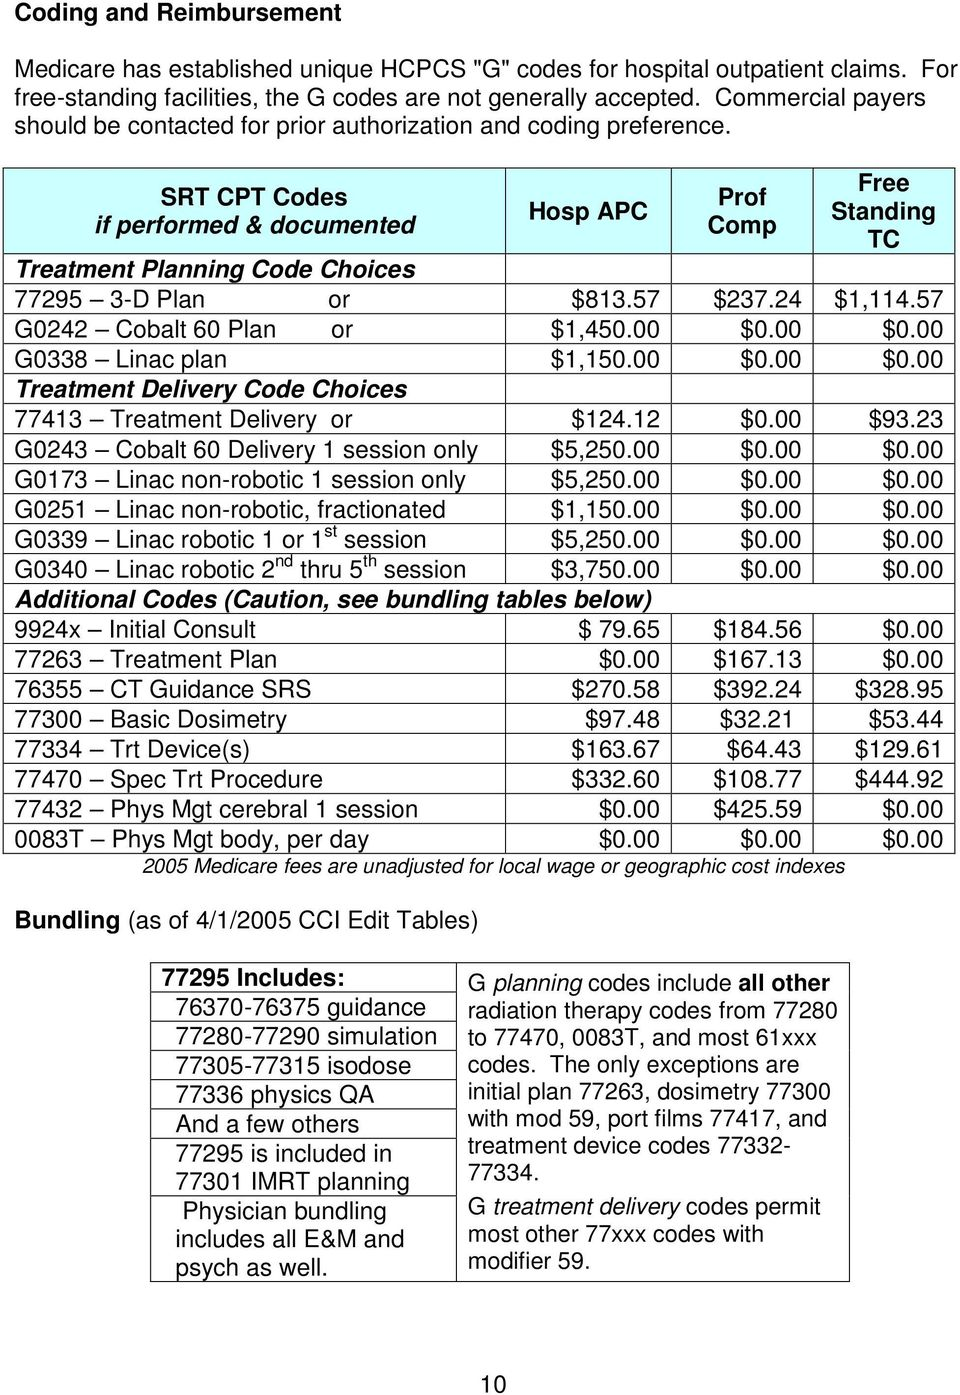 SRT CPT Codes if performed & documented Hosp APC Prof Free Standing TC Treatment Planning Code Choices 77295 3-D Plan or $813.57 $237.24 $1,114.57 G0242 Cobalt 60 Plan or $1,450.00 $0.